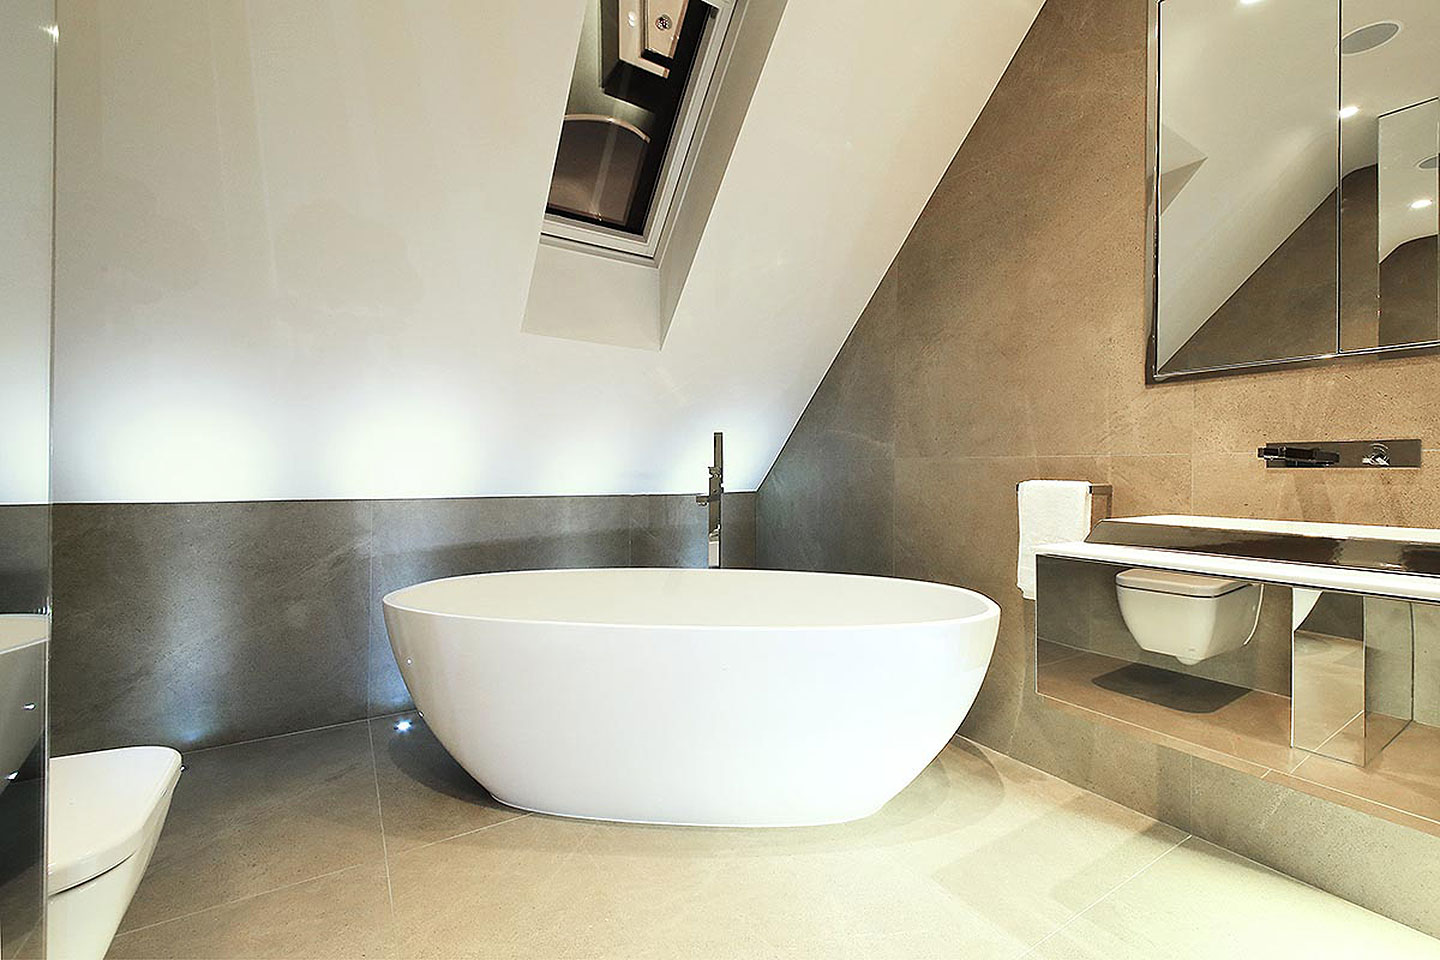 Radlett Hertfordshire - Bathroom : at night